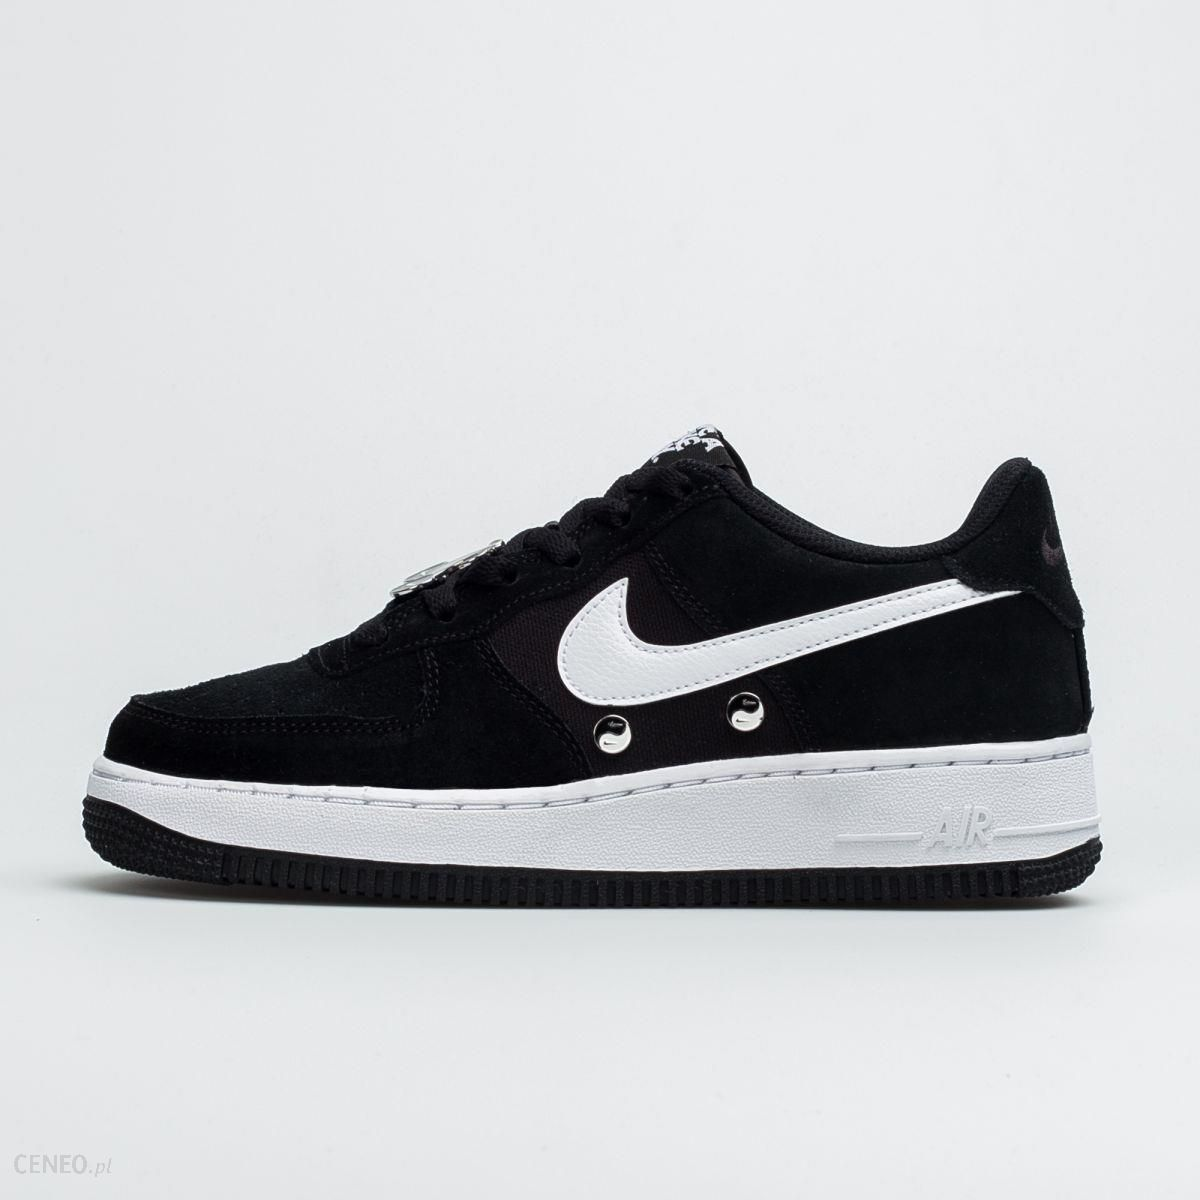 BUTY NIKE DAMSKIE AIR FORCE 1 LV8 DAY BQ8273 001 www